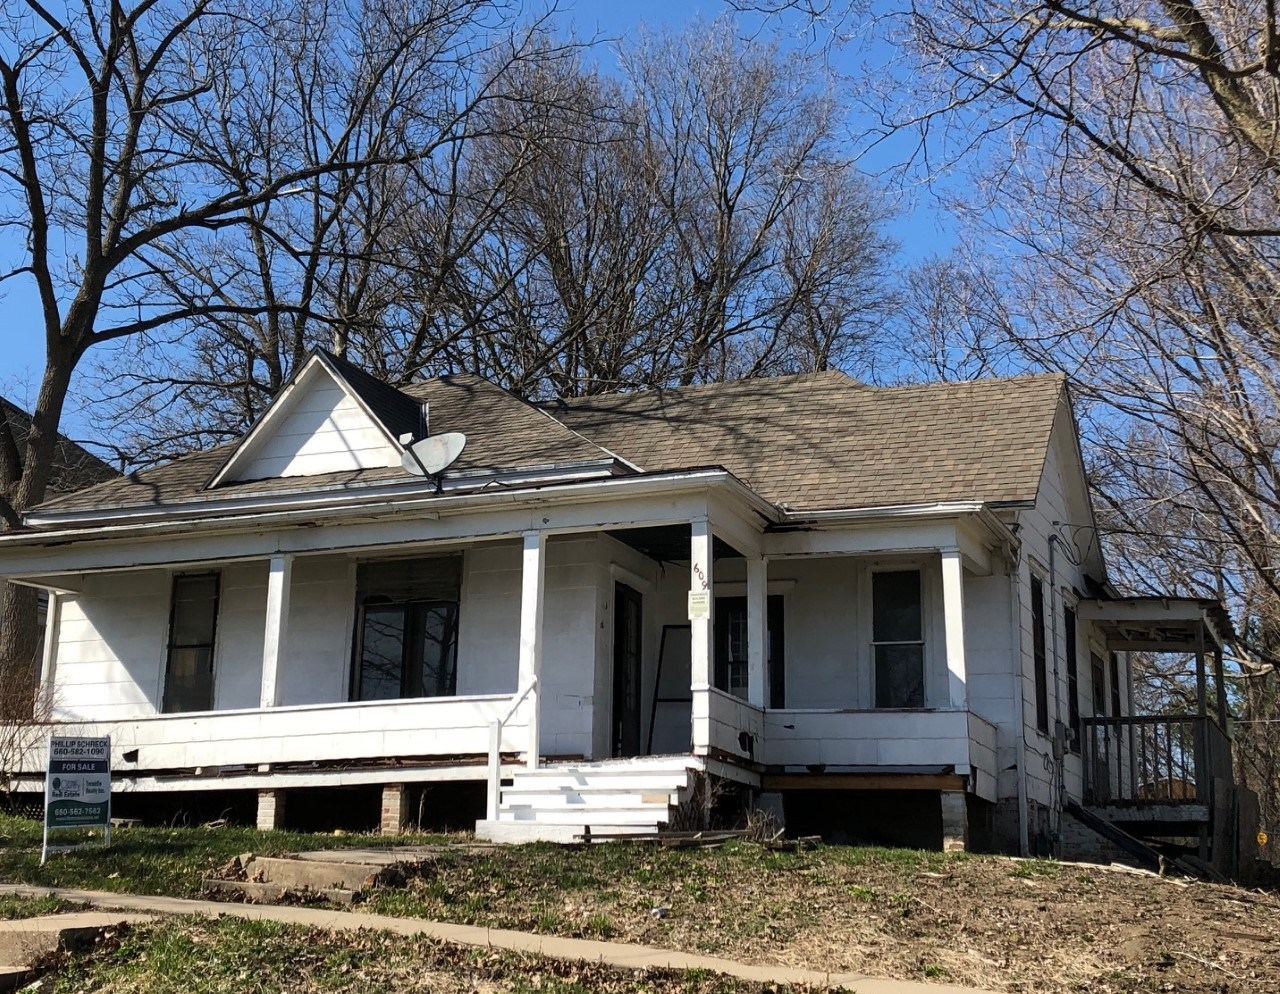 2 BEDROOM, 1 BATHROOM HOUSE FOR SALE IN MARYVILLE, MISSOURI